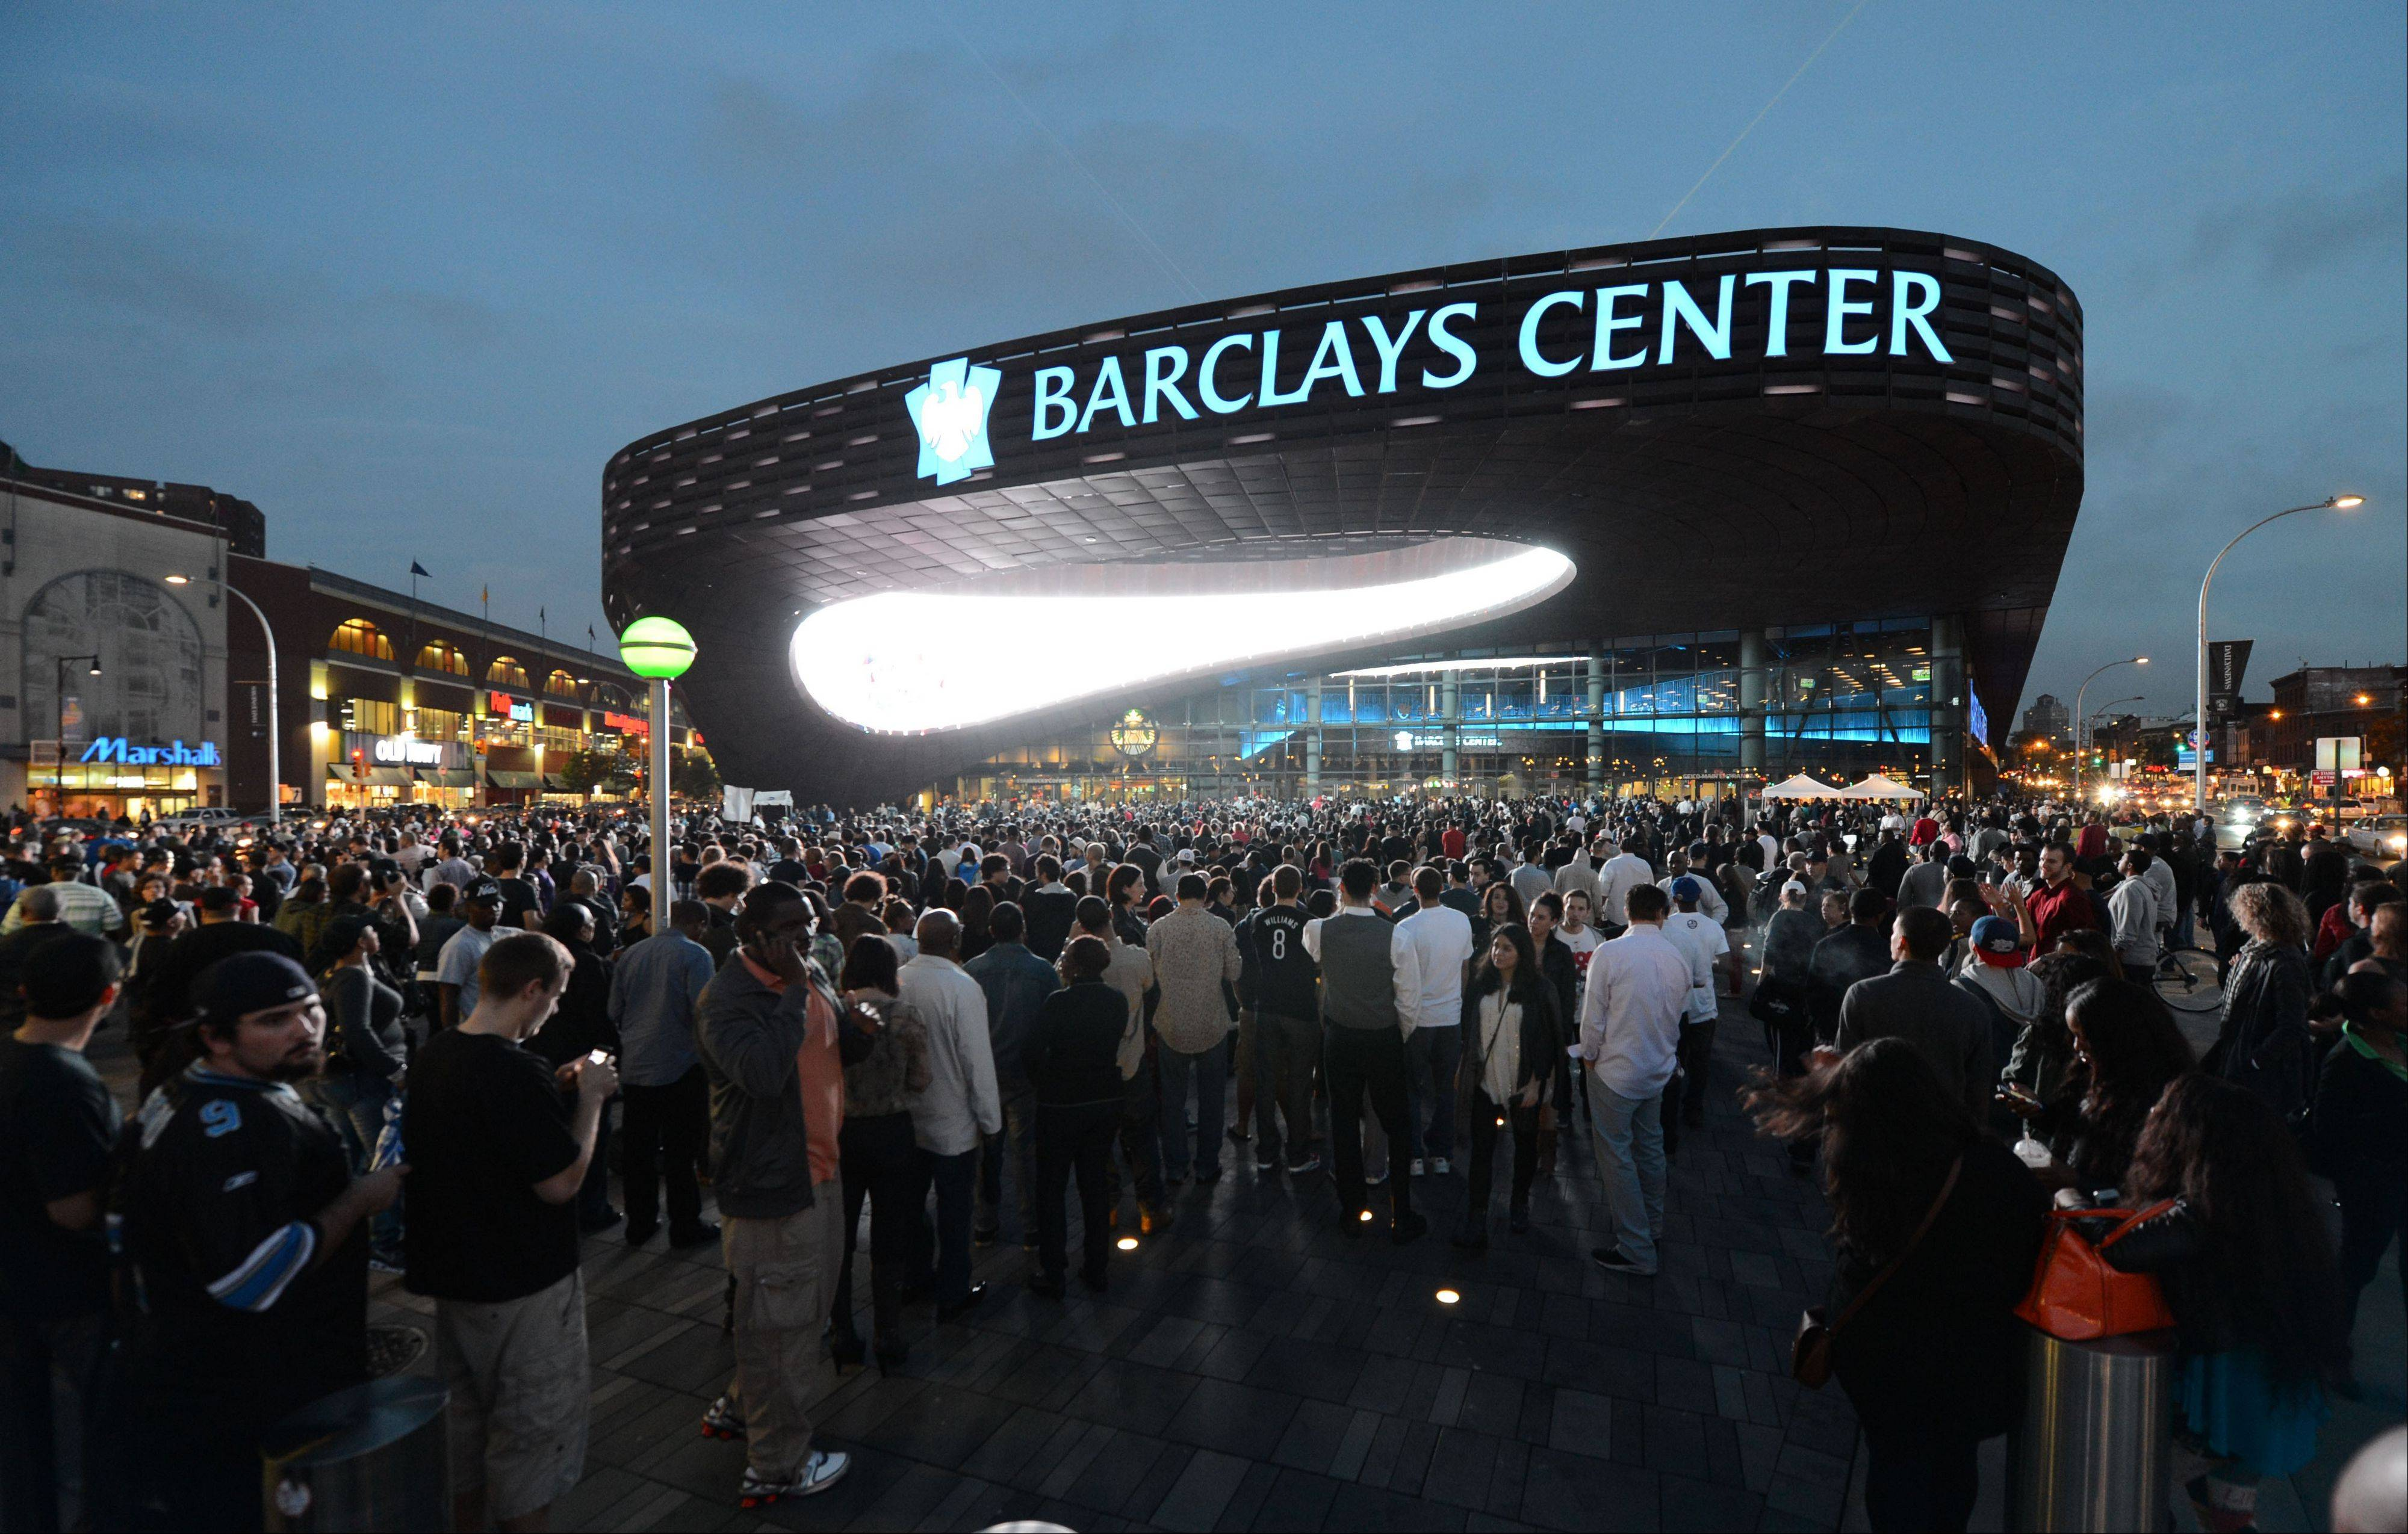 People arrive for the first of eight Jay-Z shows at the Barclays Center in Brooklyn. The New York Islanders have struck a deal to move to Barclays Center starting with the 2015-16 season.